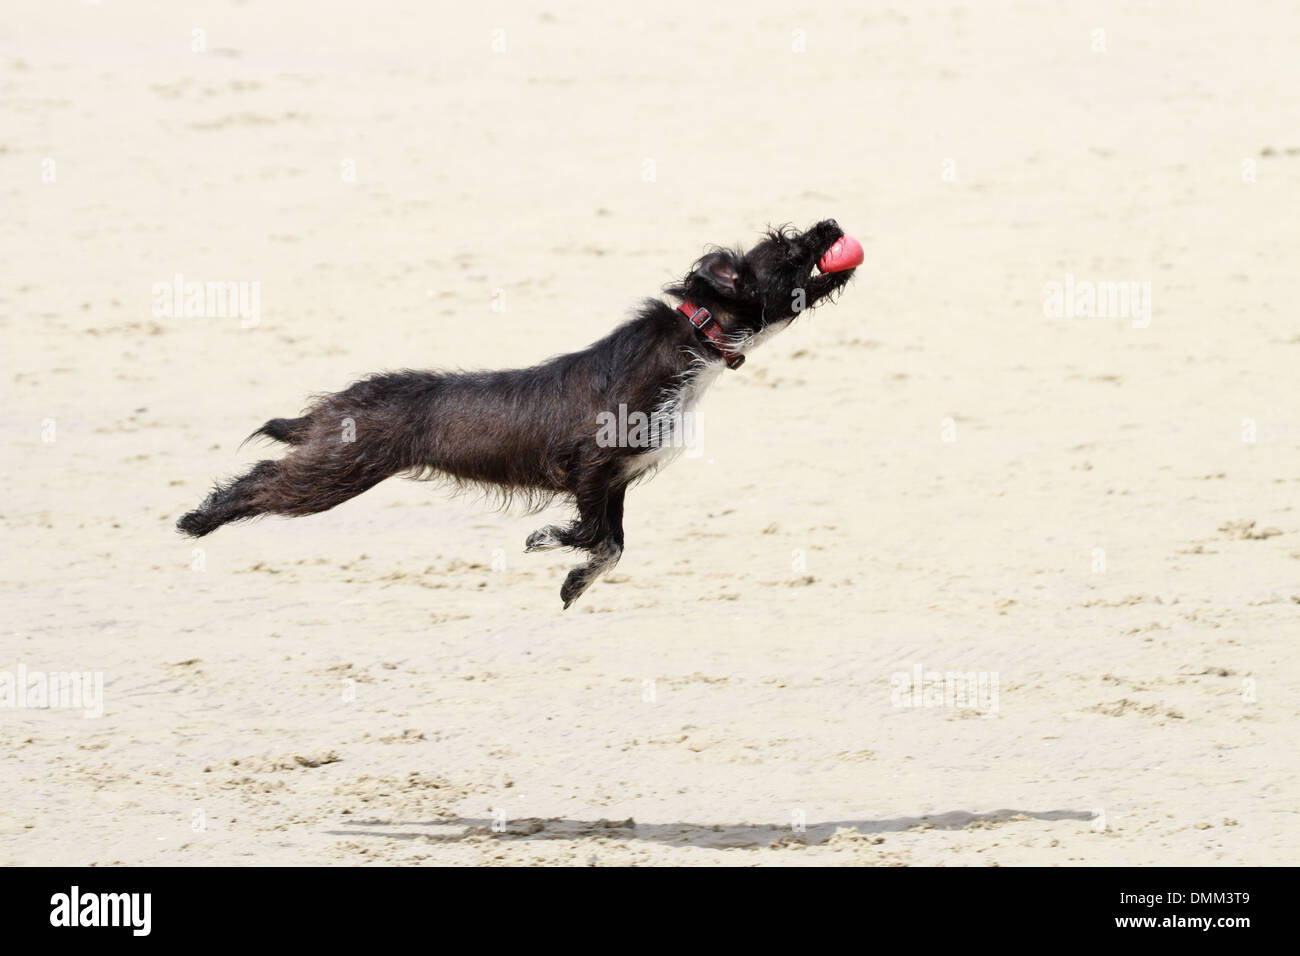 jack Russell poodle cross leaping to catch a ball on a beach - Stock Image